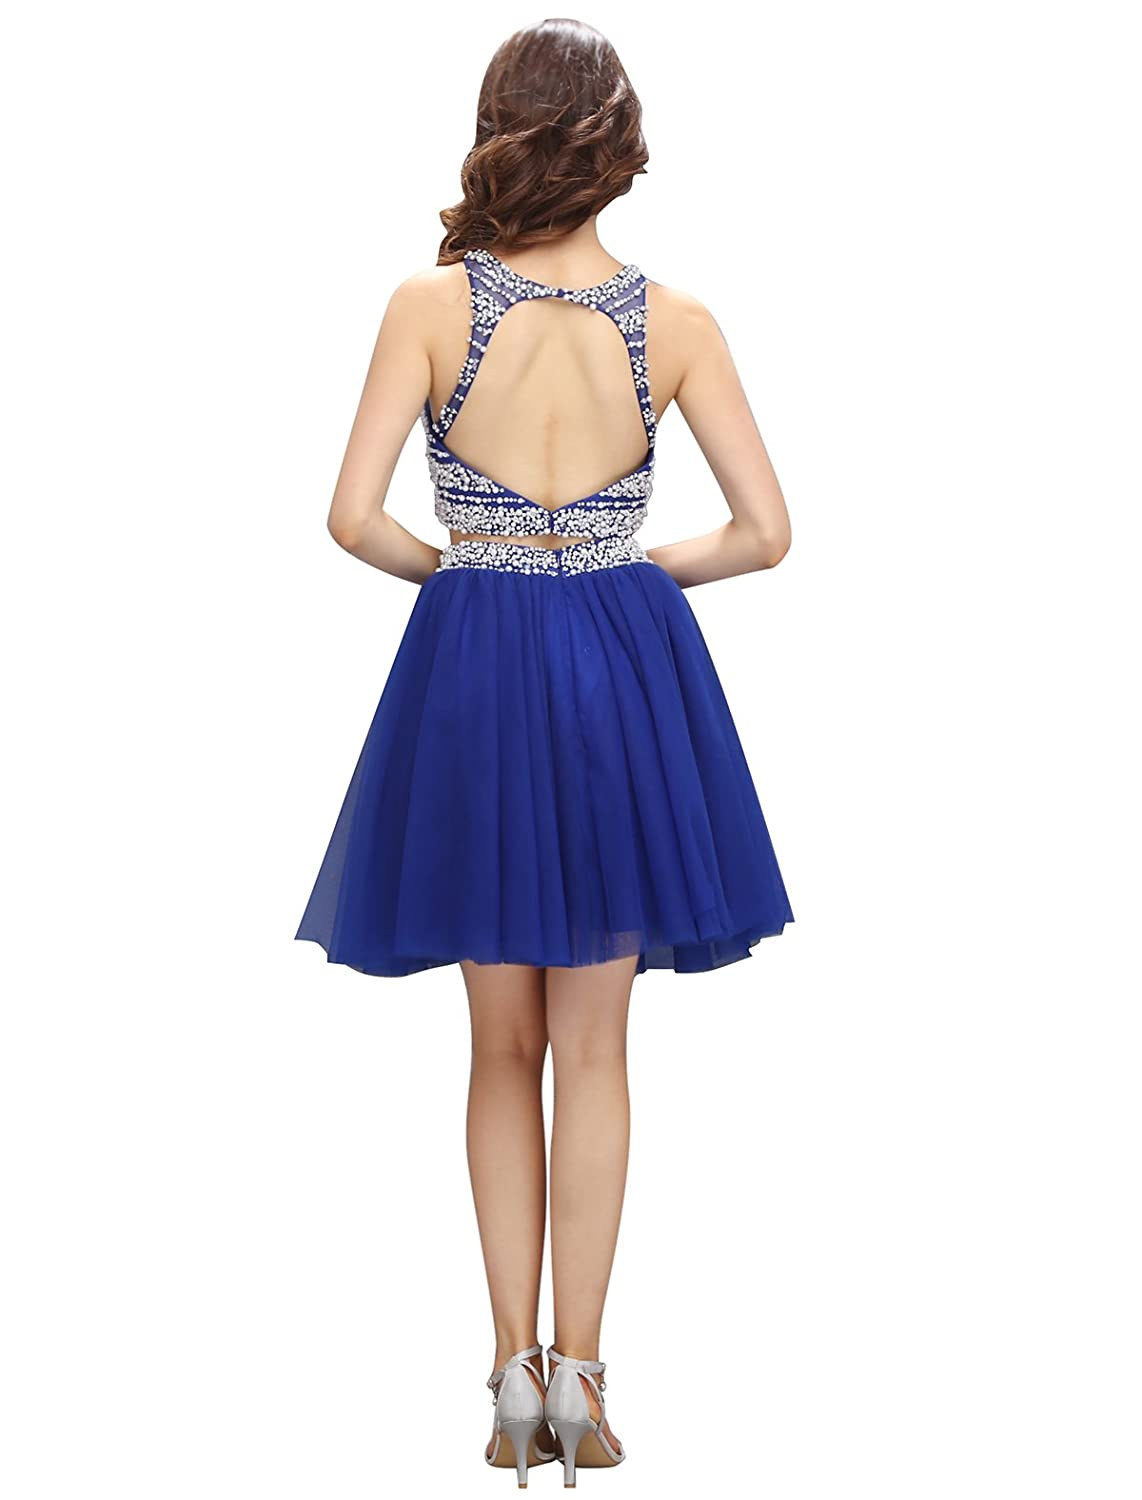 Dressystar Pearls Two Pieces Prom Dress Short Chiffon Homecoming Dress Backless